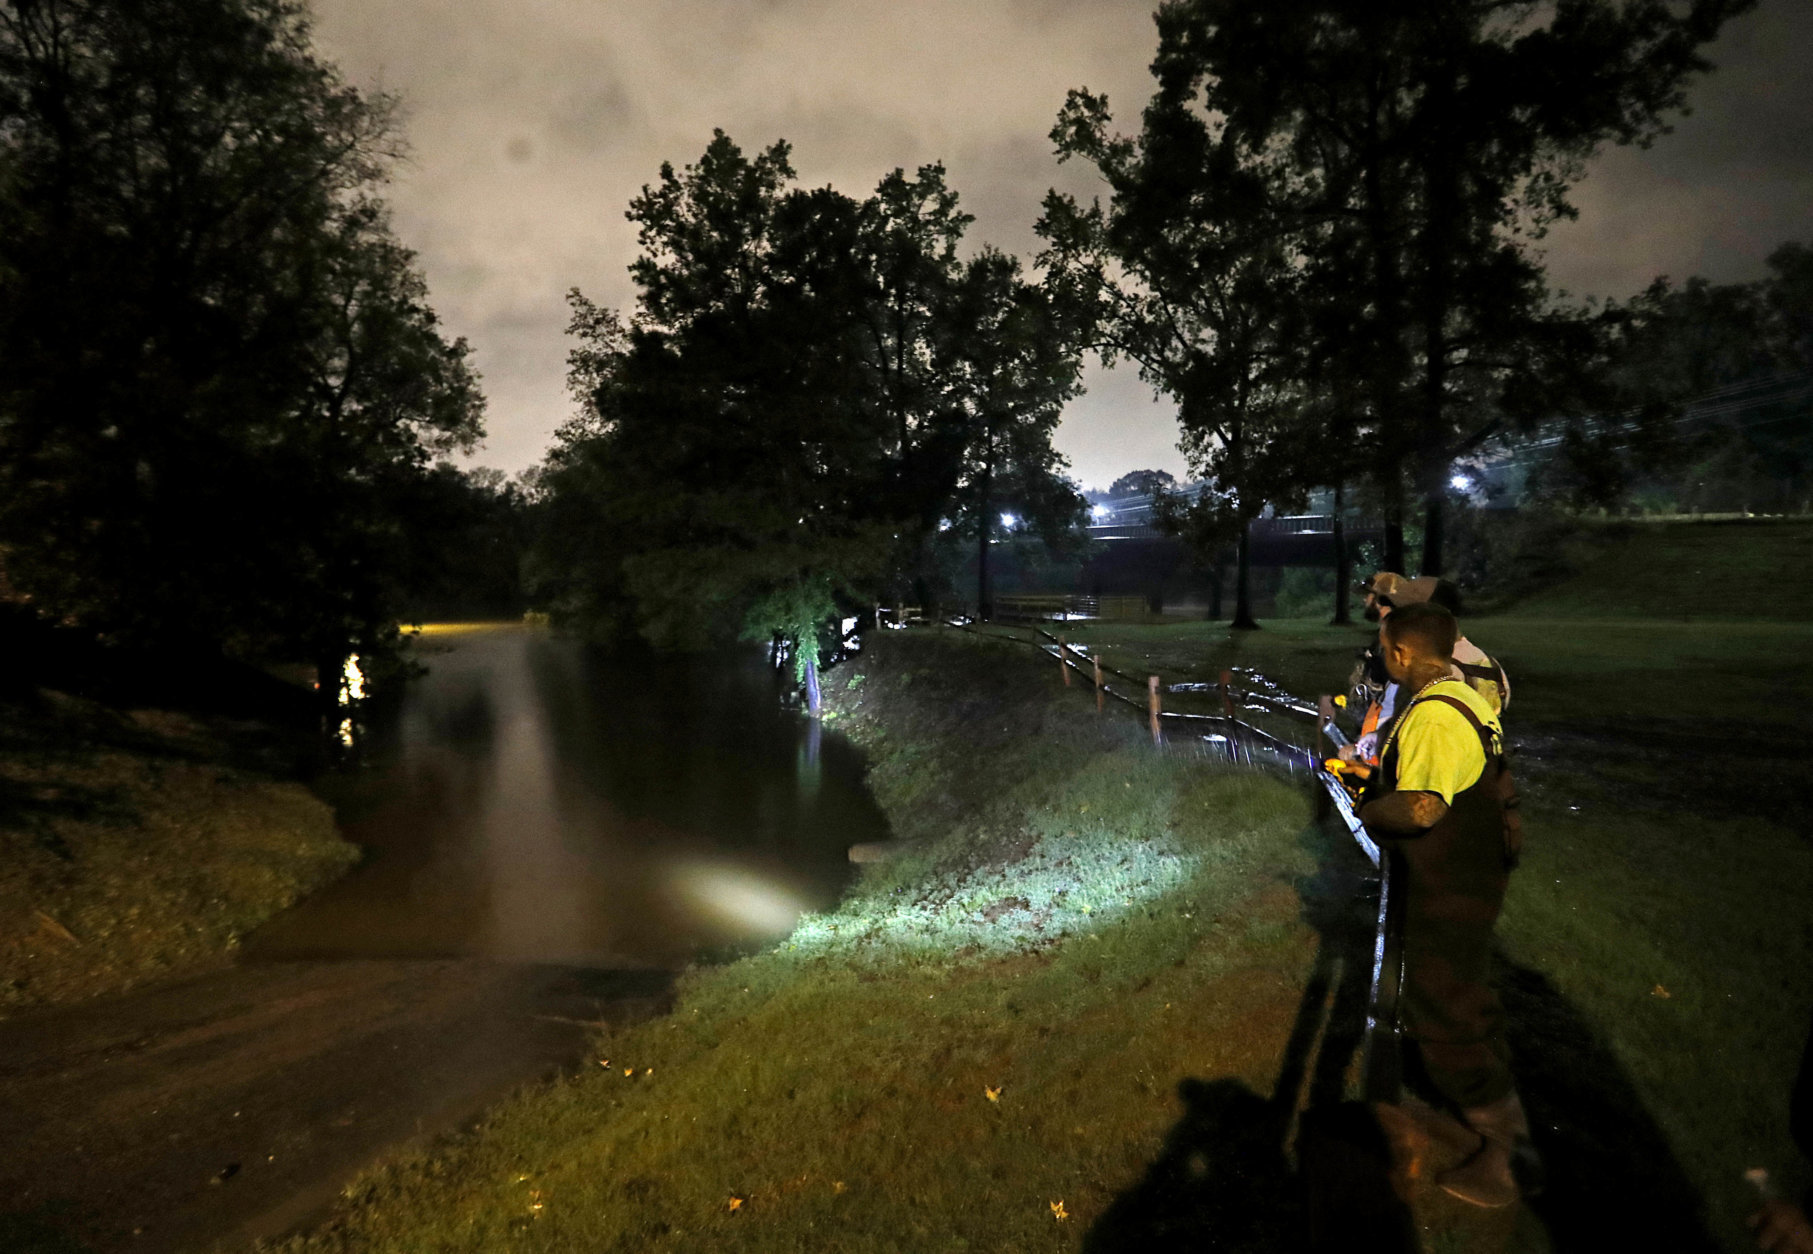 A group of local fishermen keep an eye on the Cape Fear River as they stage for potential water rescues while additional flooding remains a threat from Florence, in Fayetteville, N.C., Sunday, Sept. 16, 2018. (AP Photo/David Goldman)